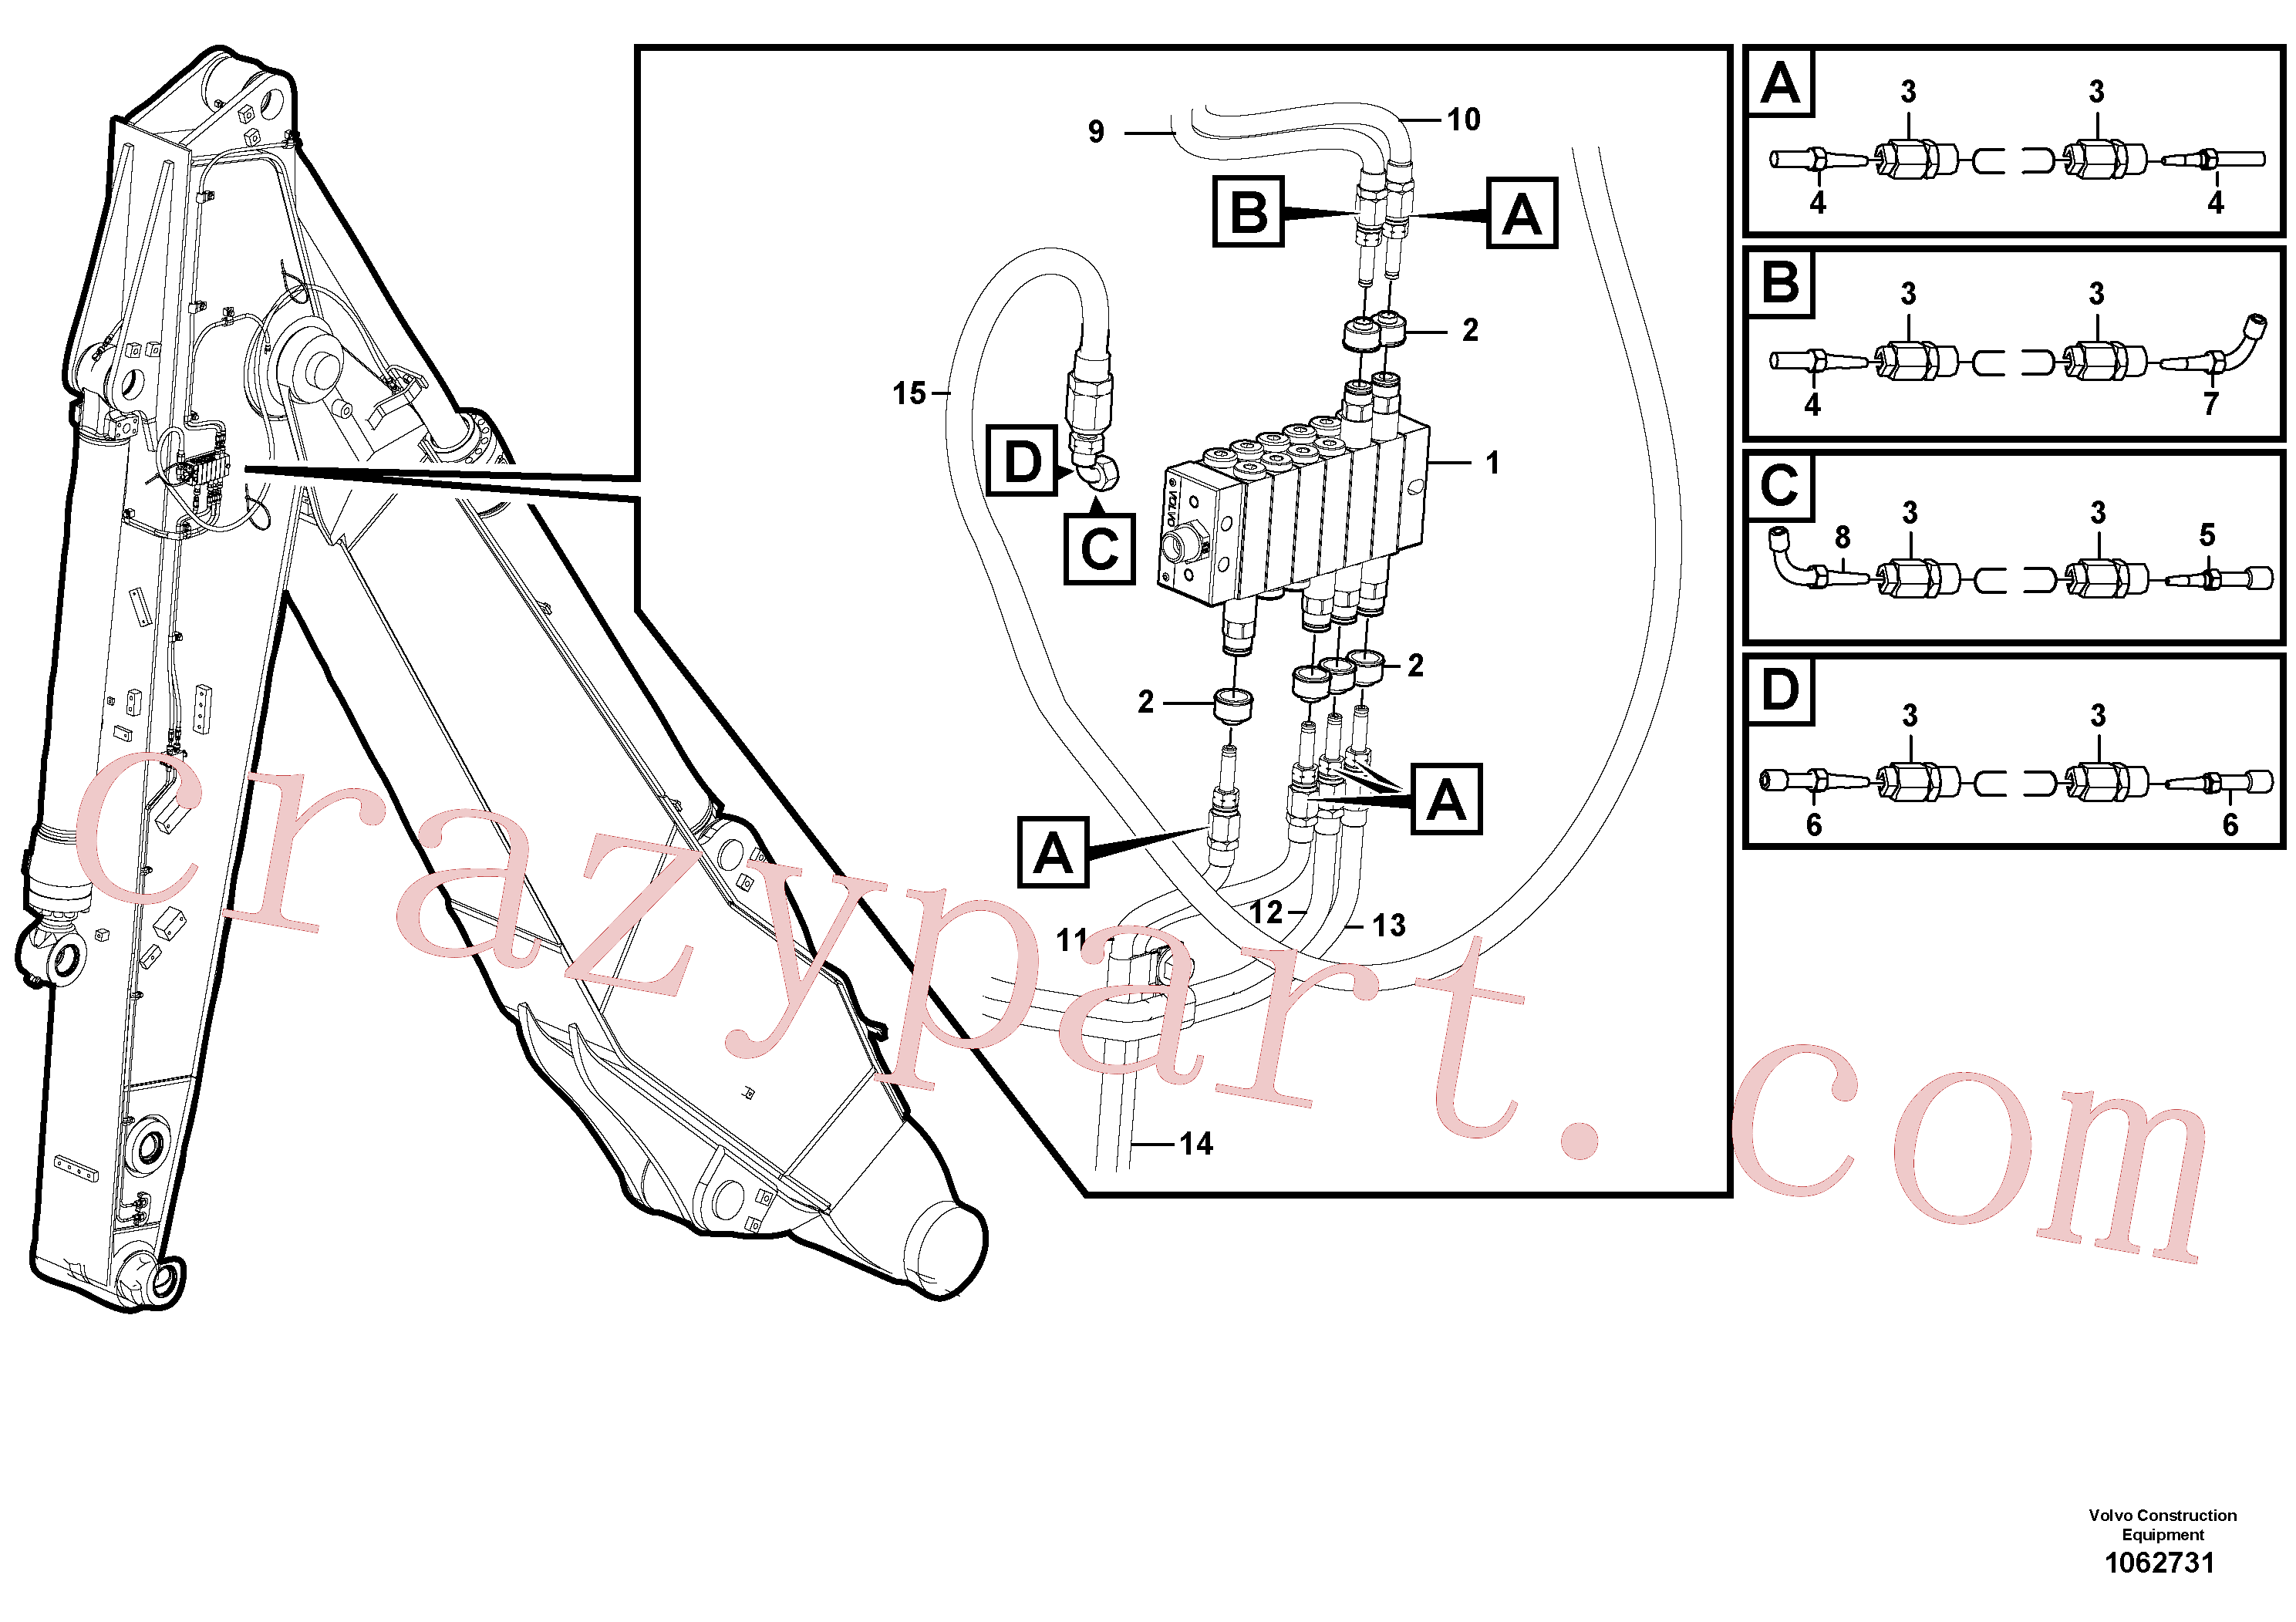 VOE14389578 for Volvo Distributor set, arm(1062731 assembly)